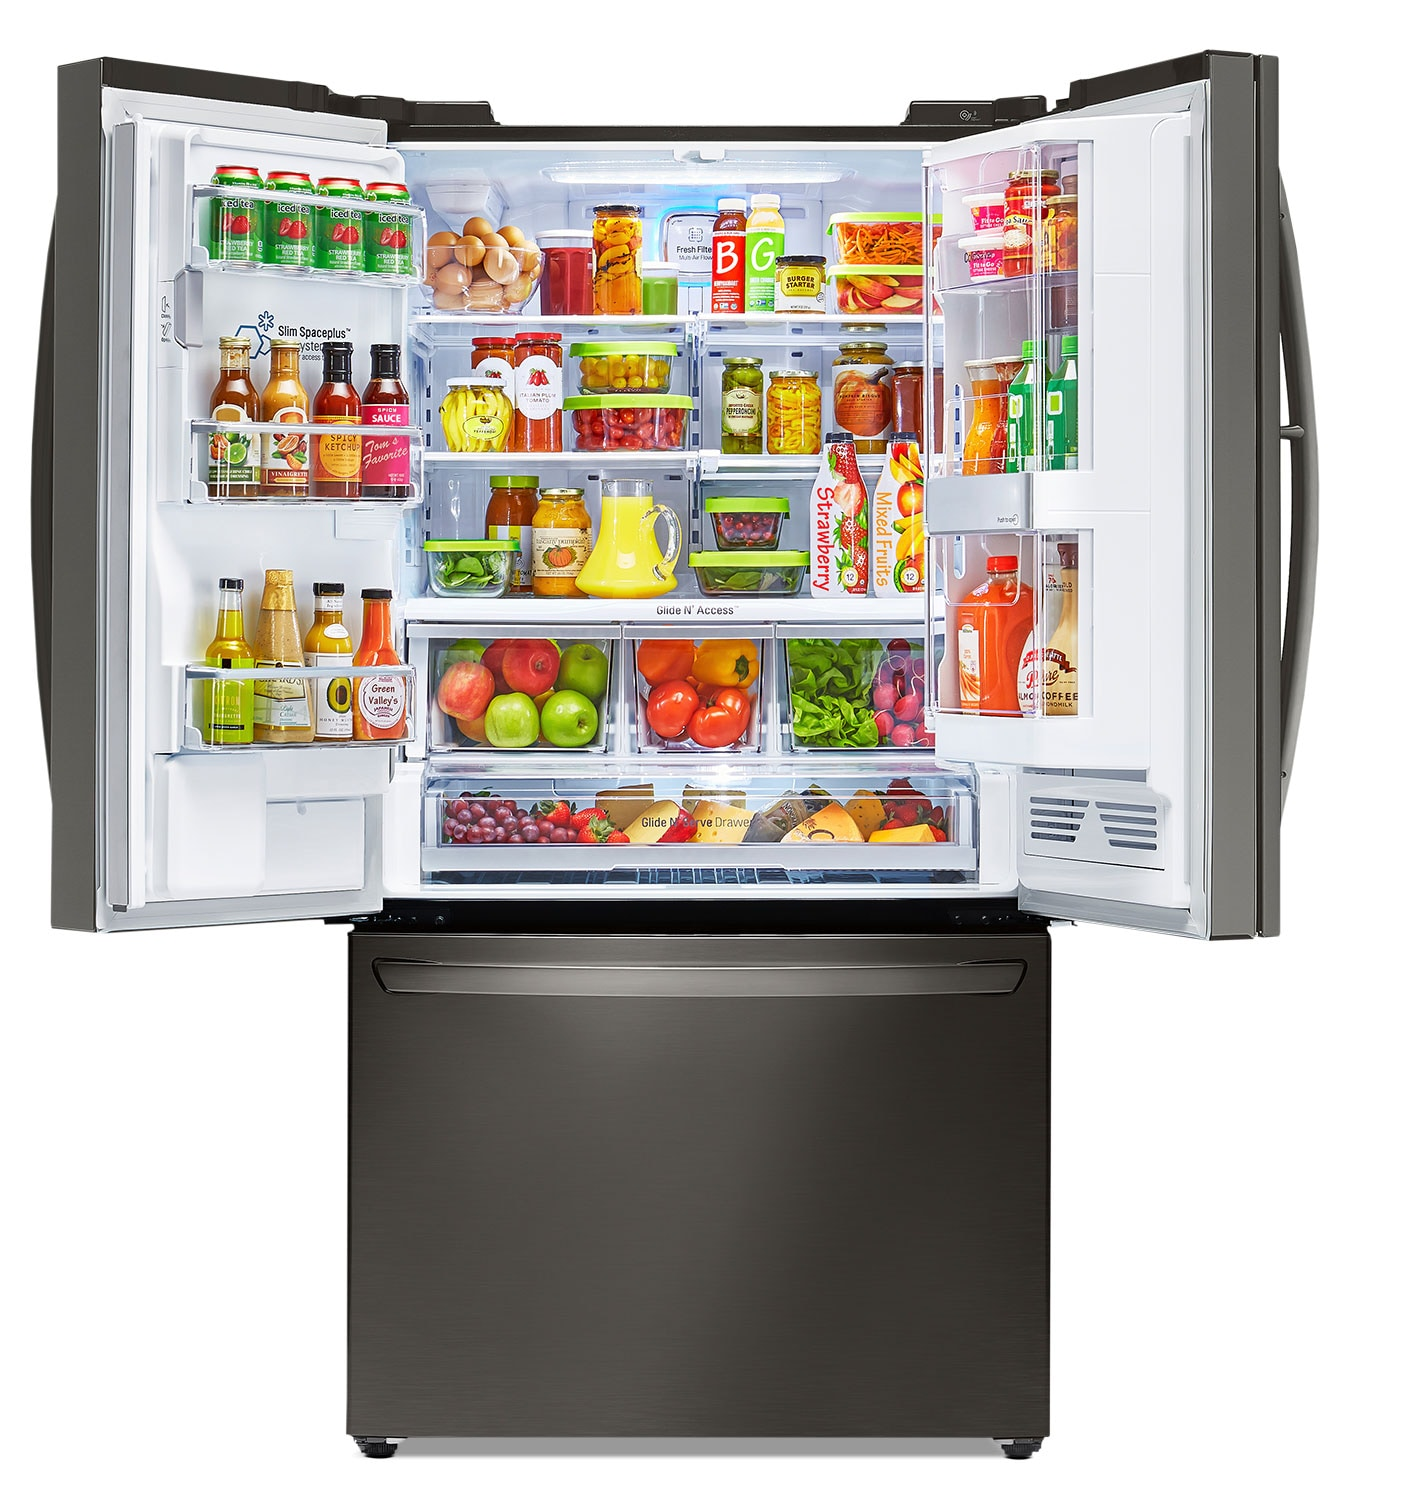 Largest Capacity Refrigerator Lg Appliances Black Stainless Steel French Door Refrigerator 296